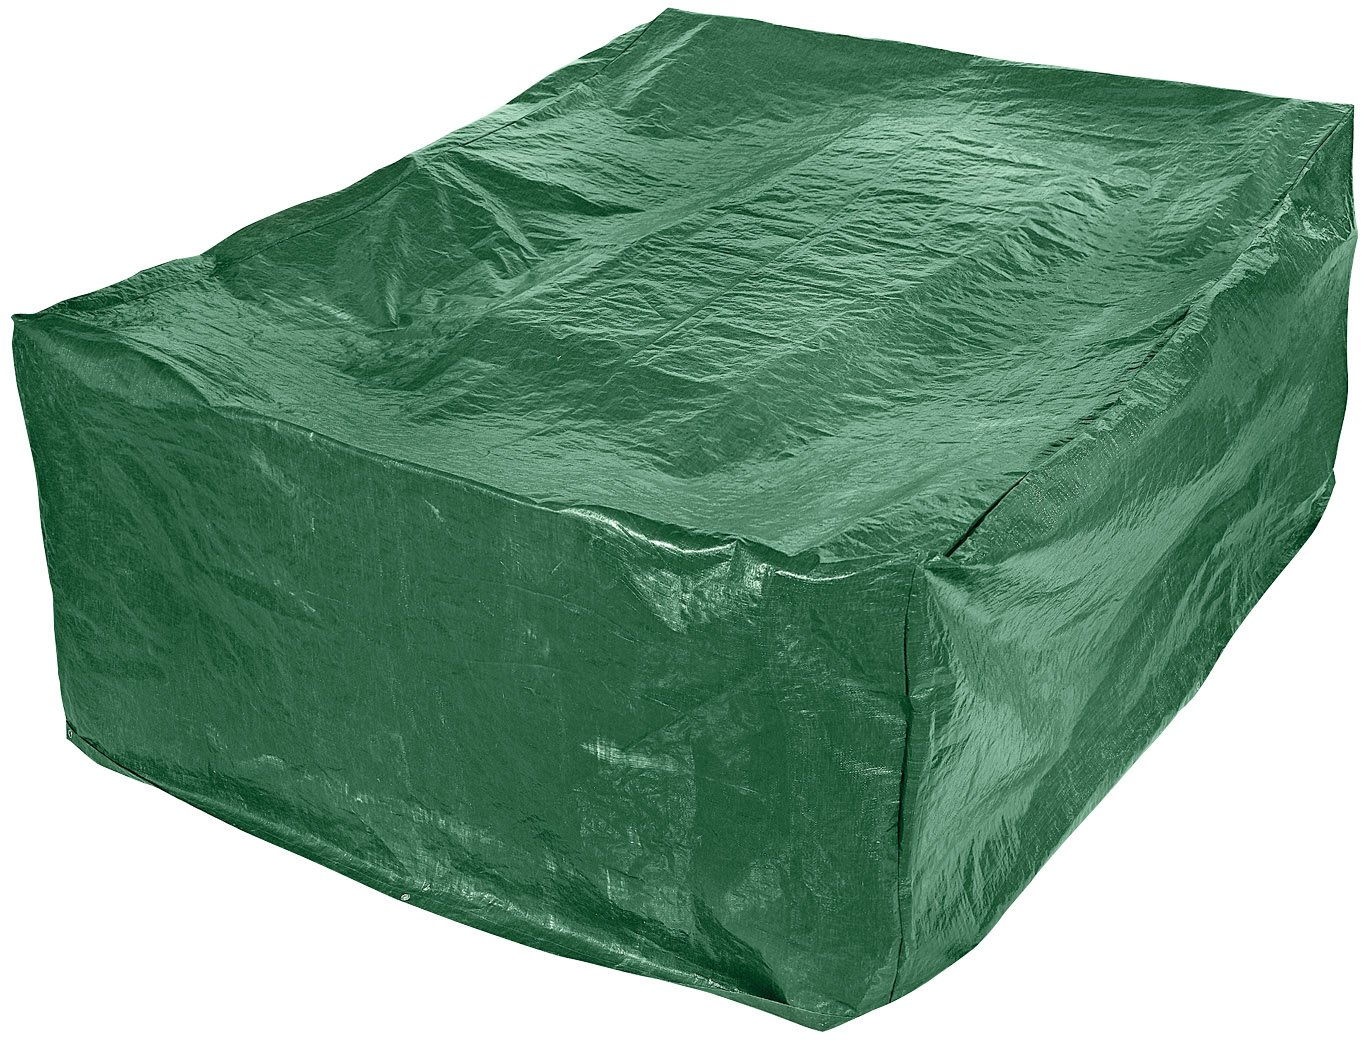 large outdoor furniture covers. draper 2780 mm x 2040 1060 large patio set cover amazoncouk garden u0026 outdoors outdoor furniture covers r